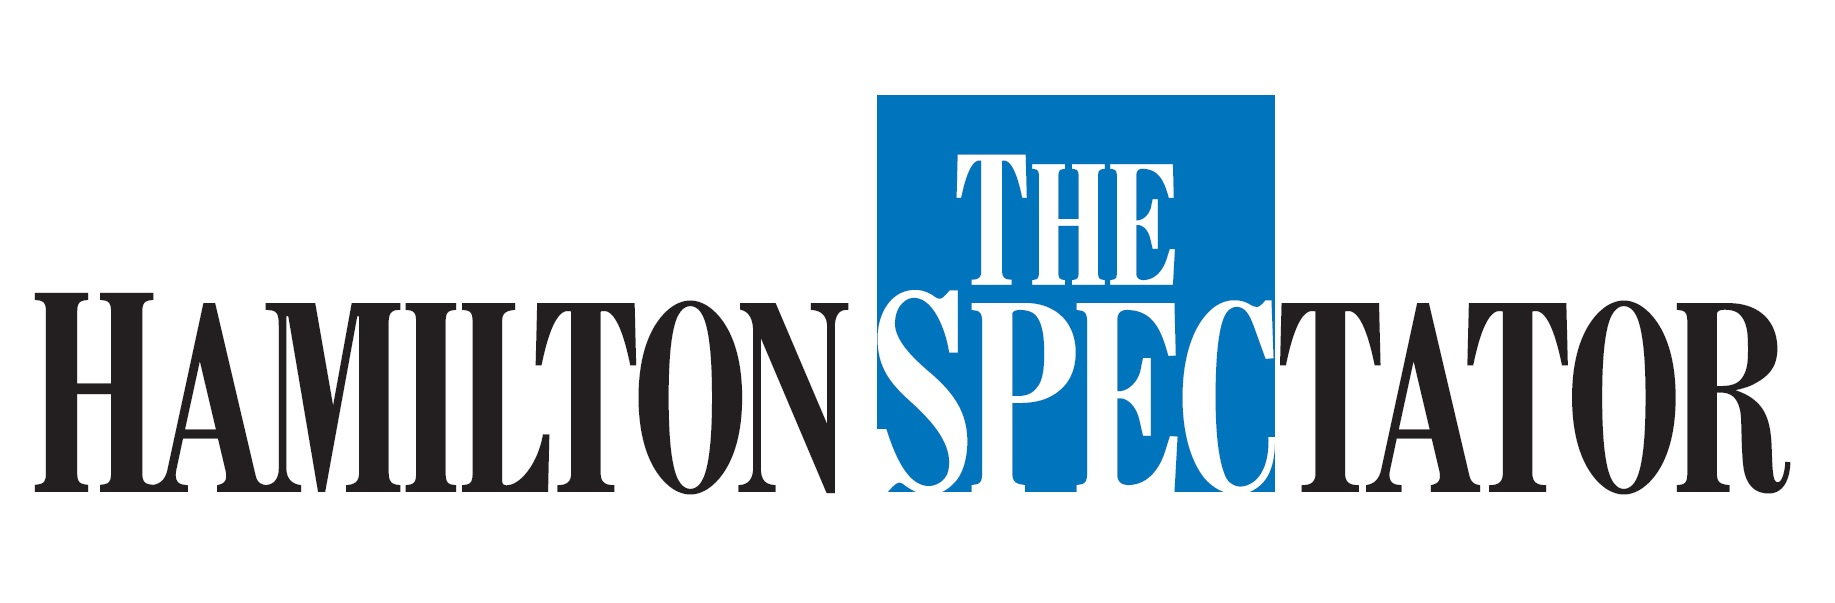 Code Clubs Featured In The Hamilton Spectator Software